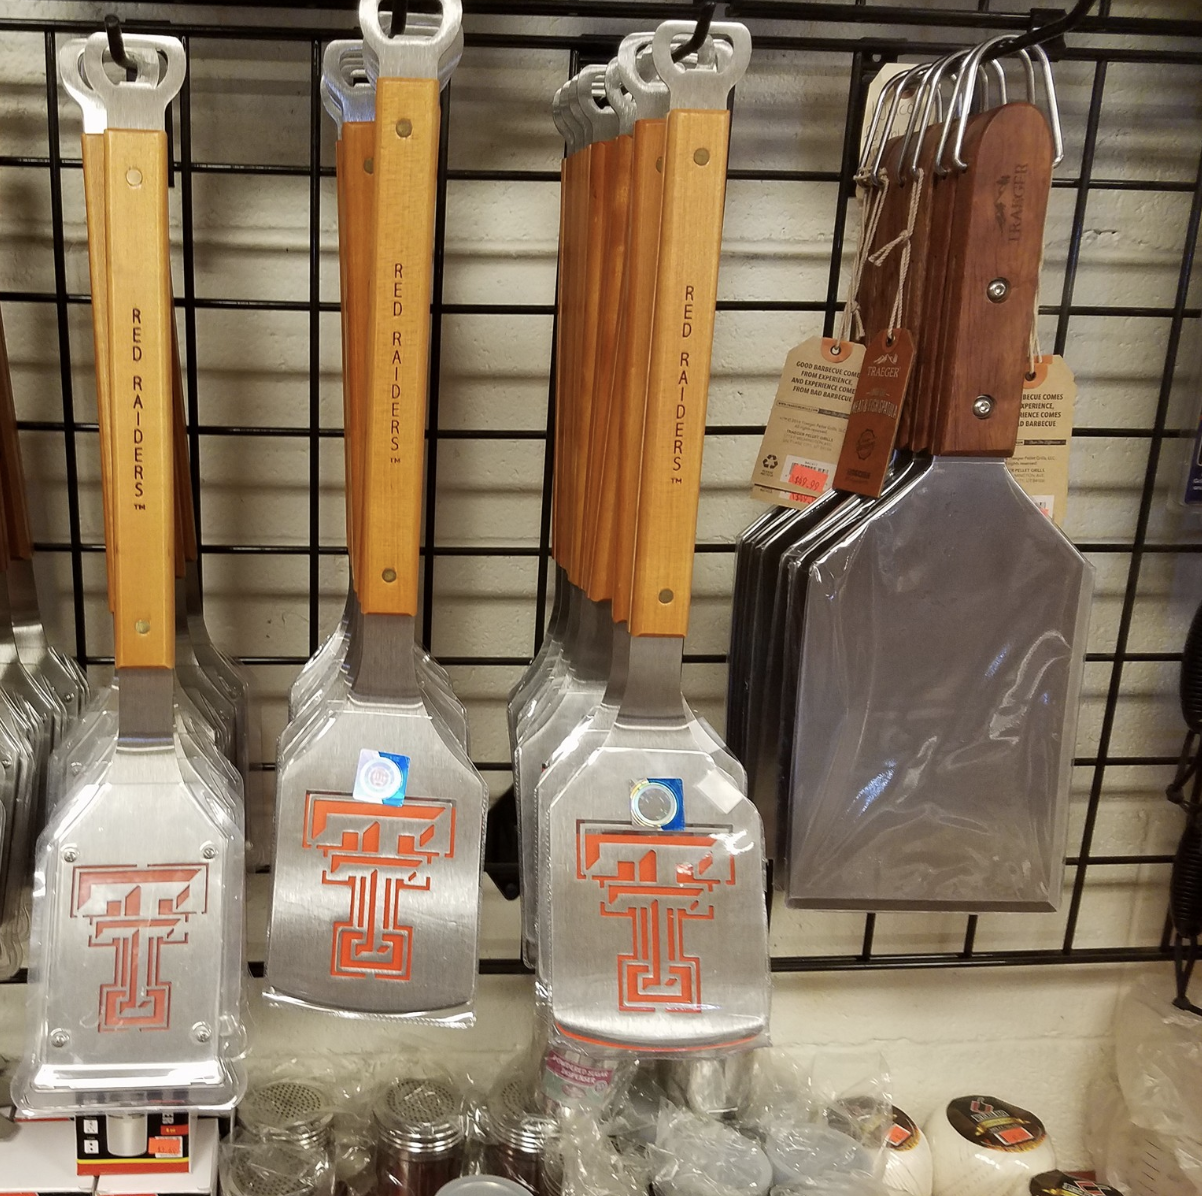 (Spatulas from The Outdoor Chef)